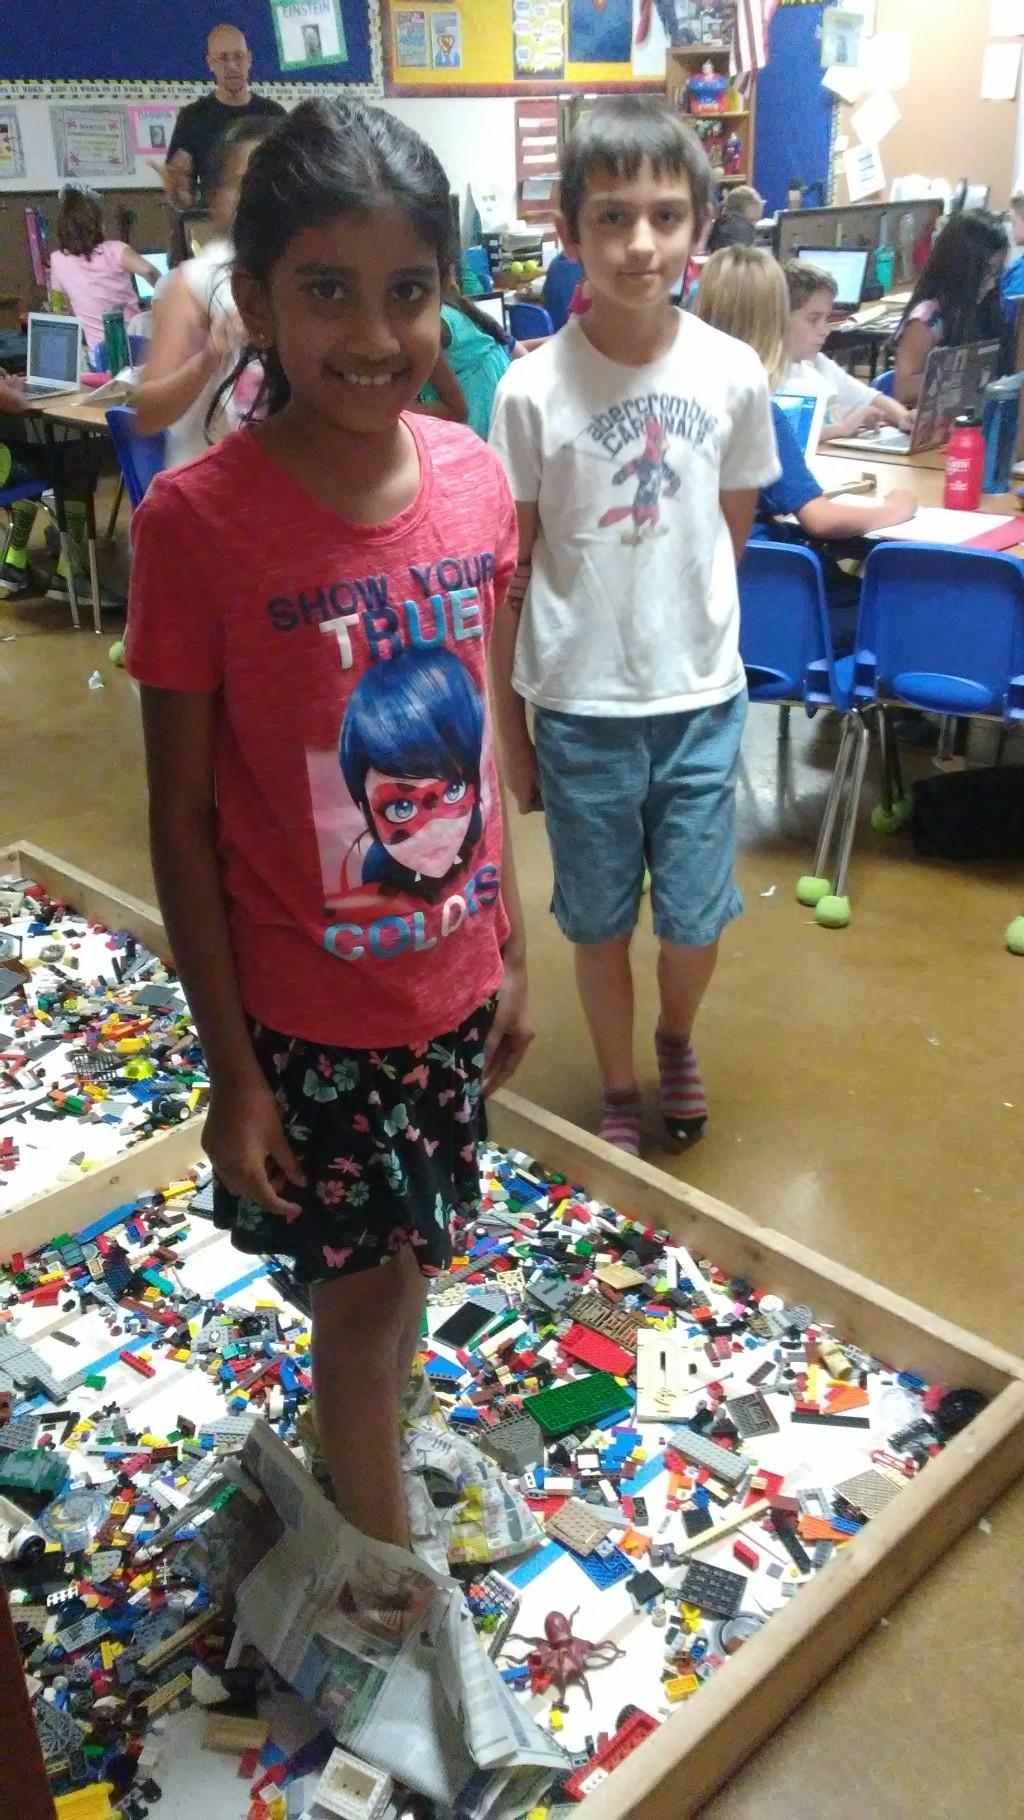 Fifth graders engineer newspaper shoes to protect their feet on a bed of legos.2